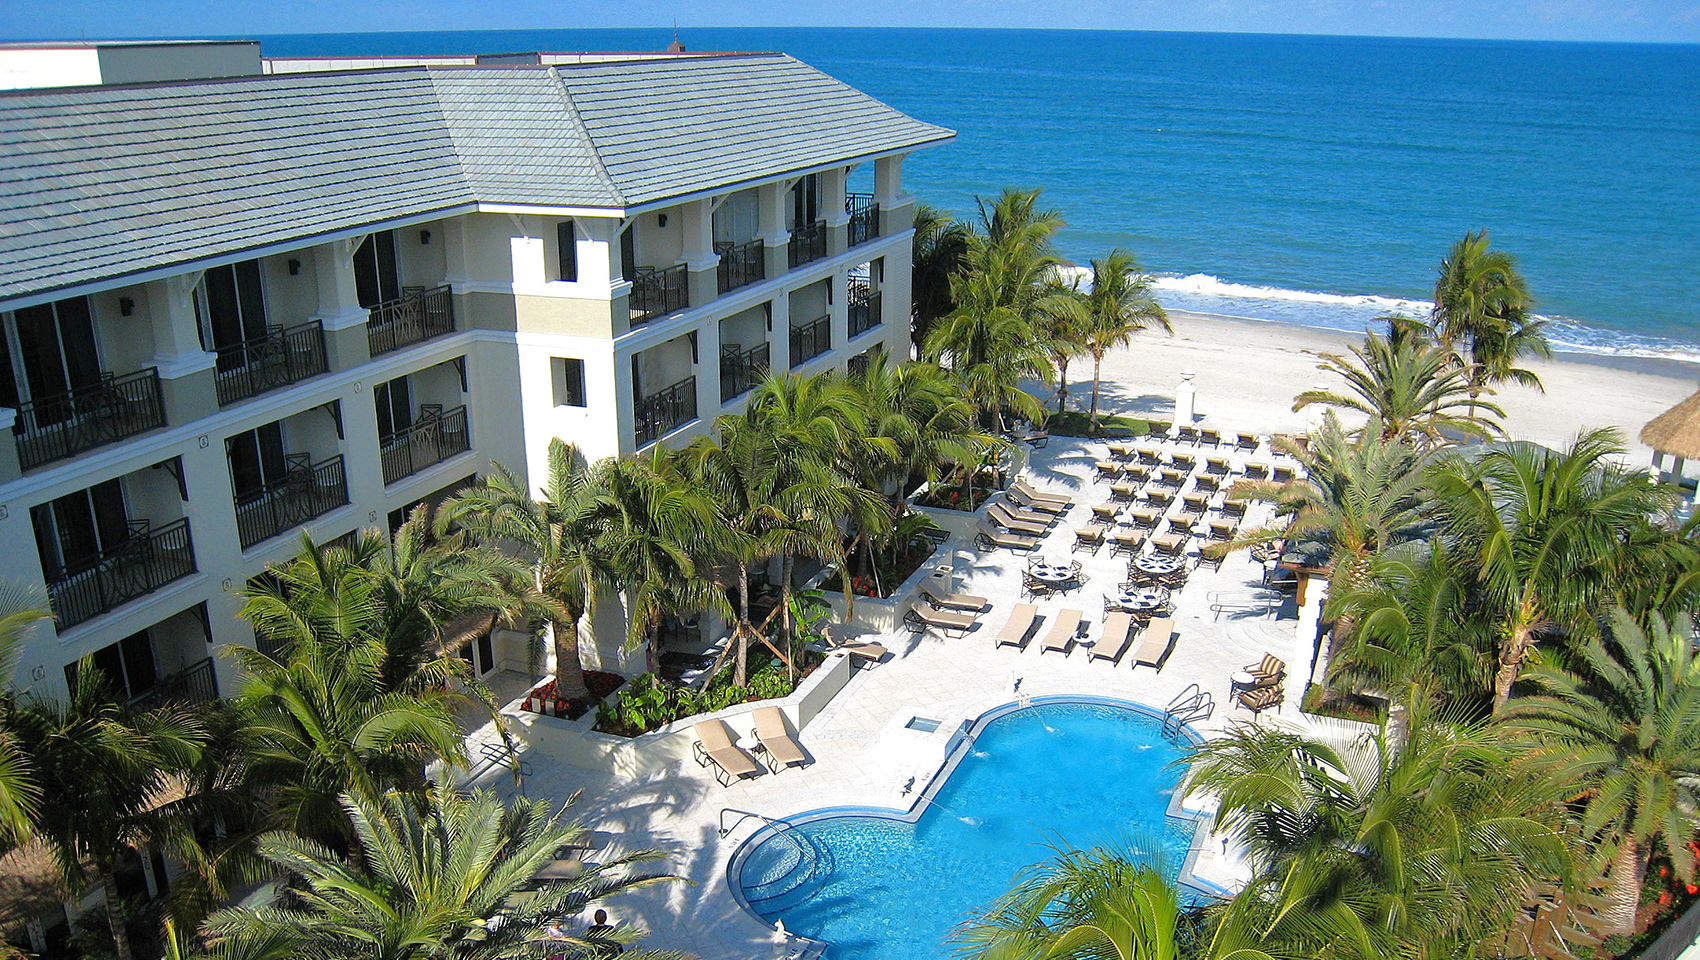 Vero Beach Hotel and Spa